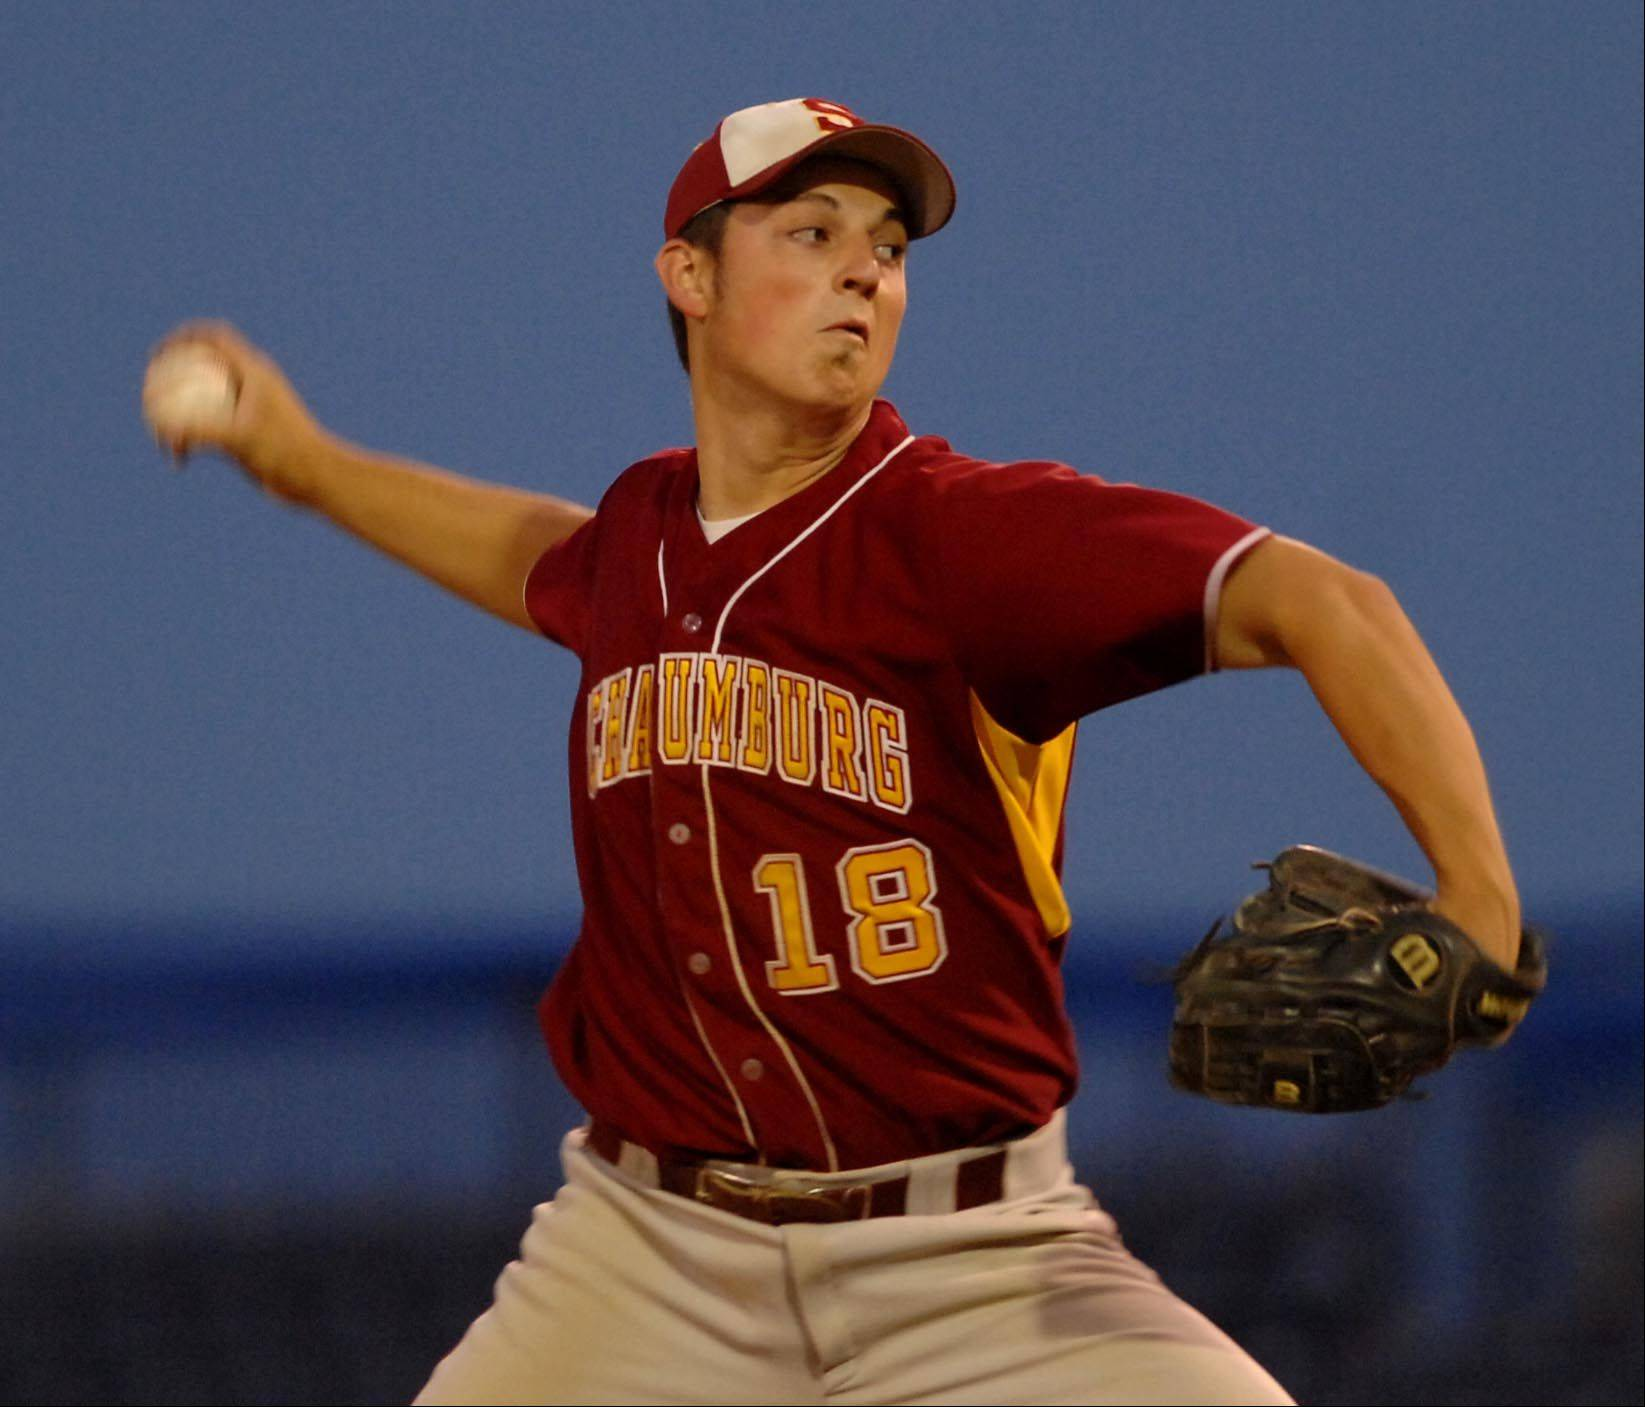 Schaumburg's Matt Brancato, here delivering in Monday's Class 4A Rockford supersectional at RiverHawks Stadium, keyed the Saxons' impressive postseason run.